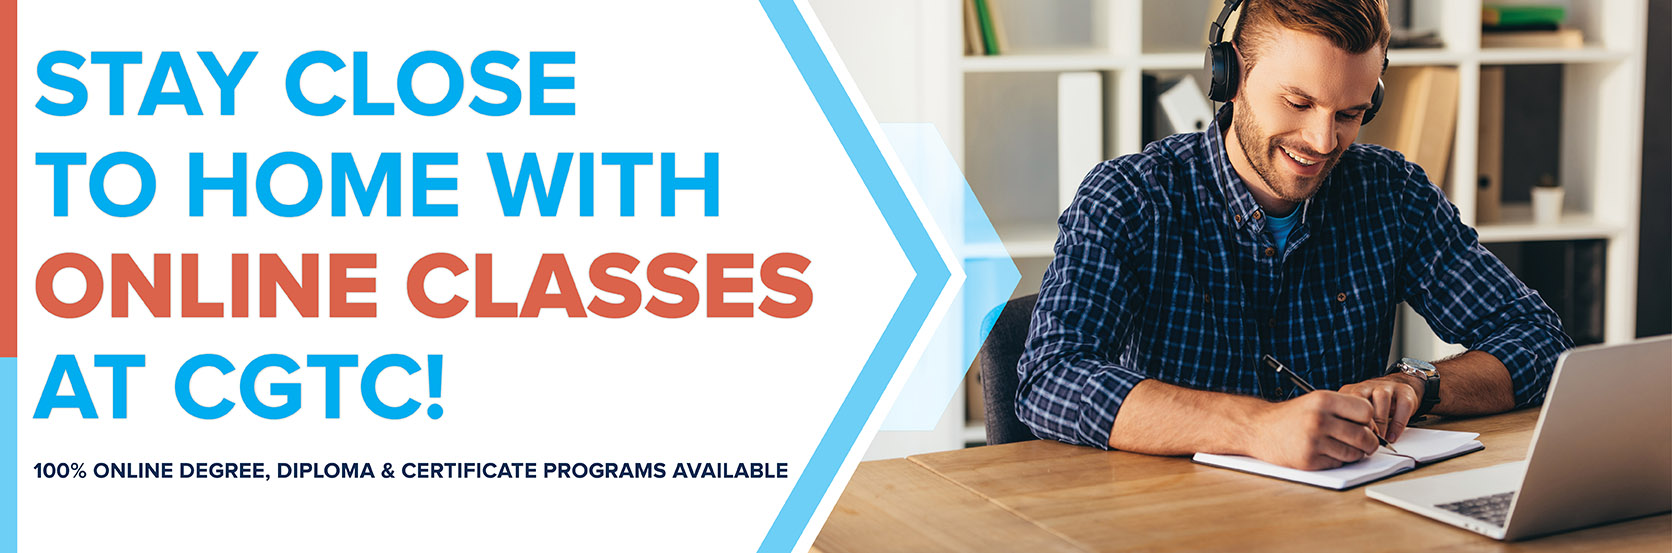 Stay close to home with online classes at CGTC. Click to learn more.